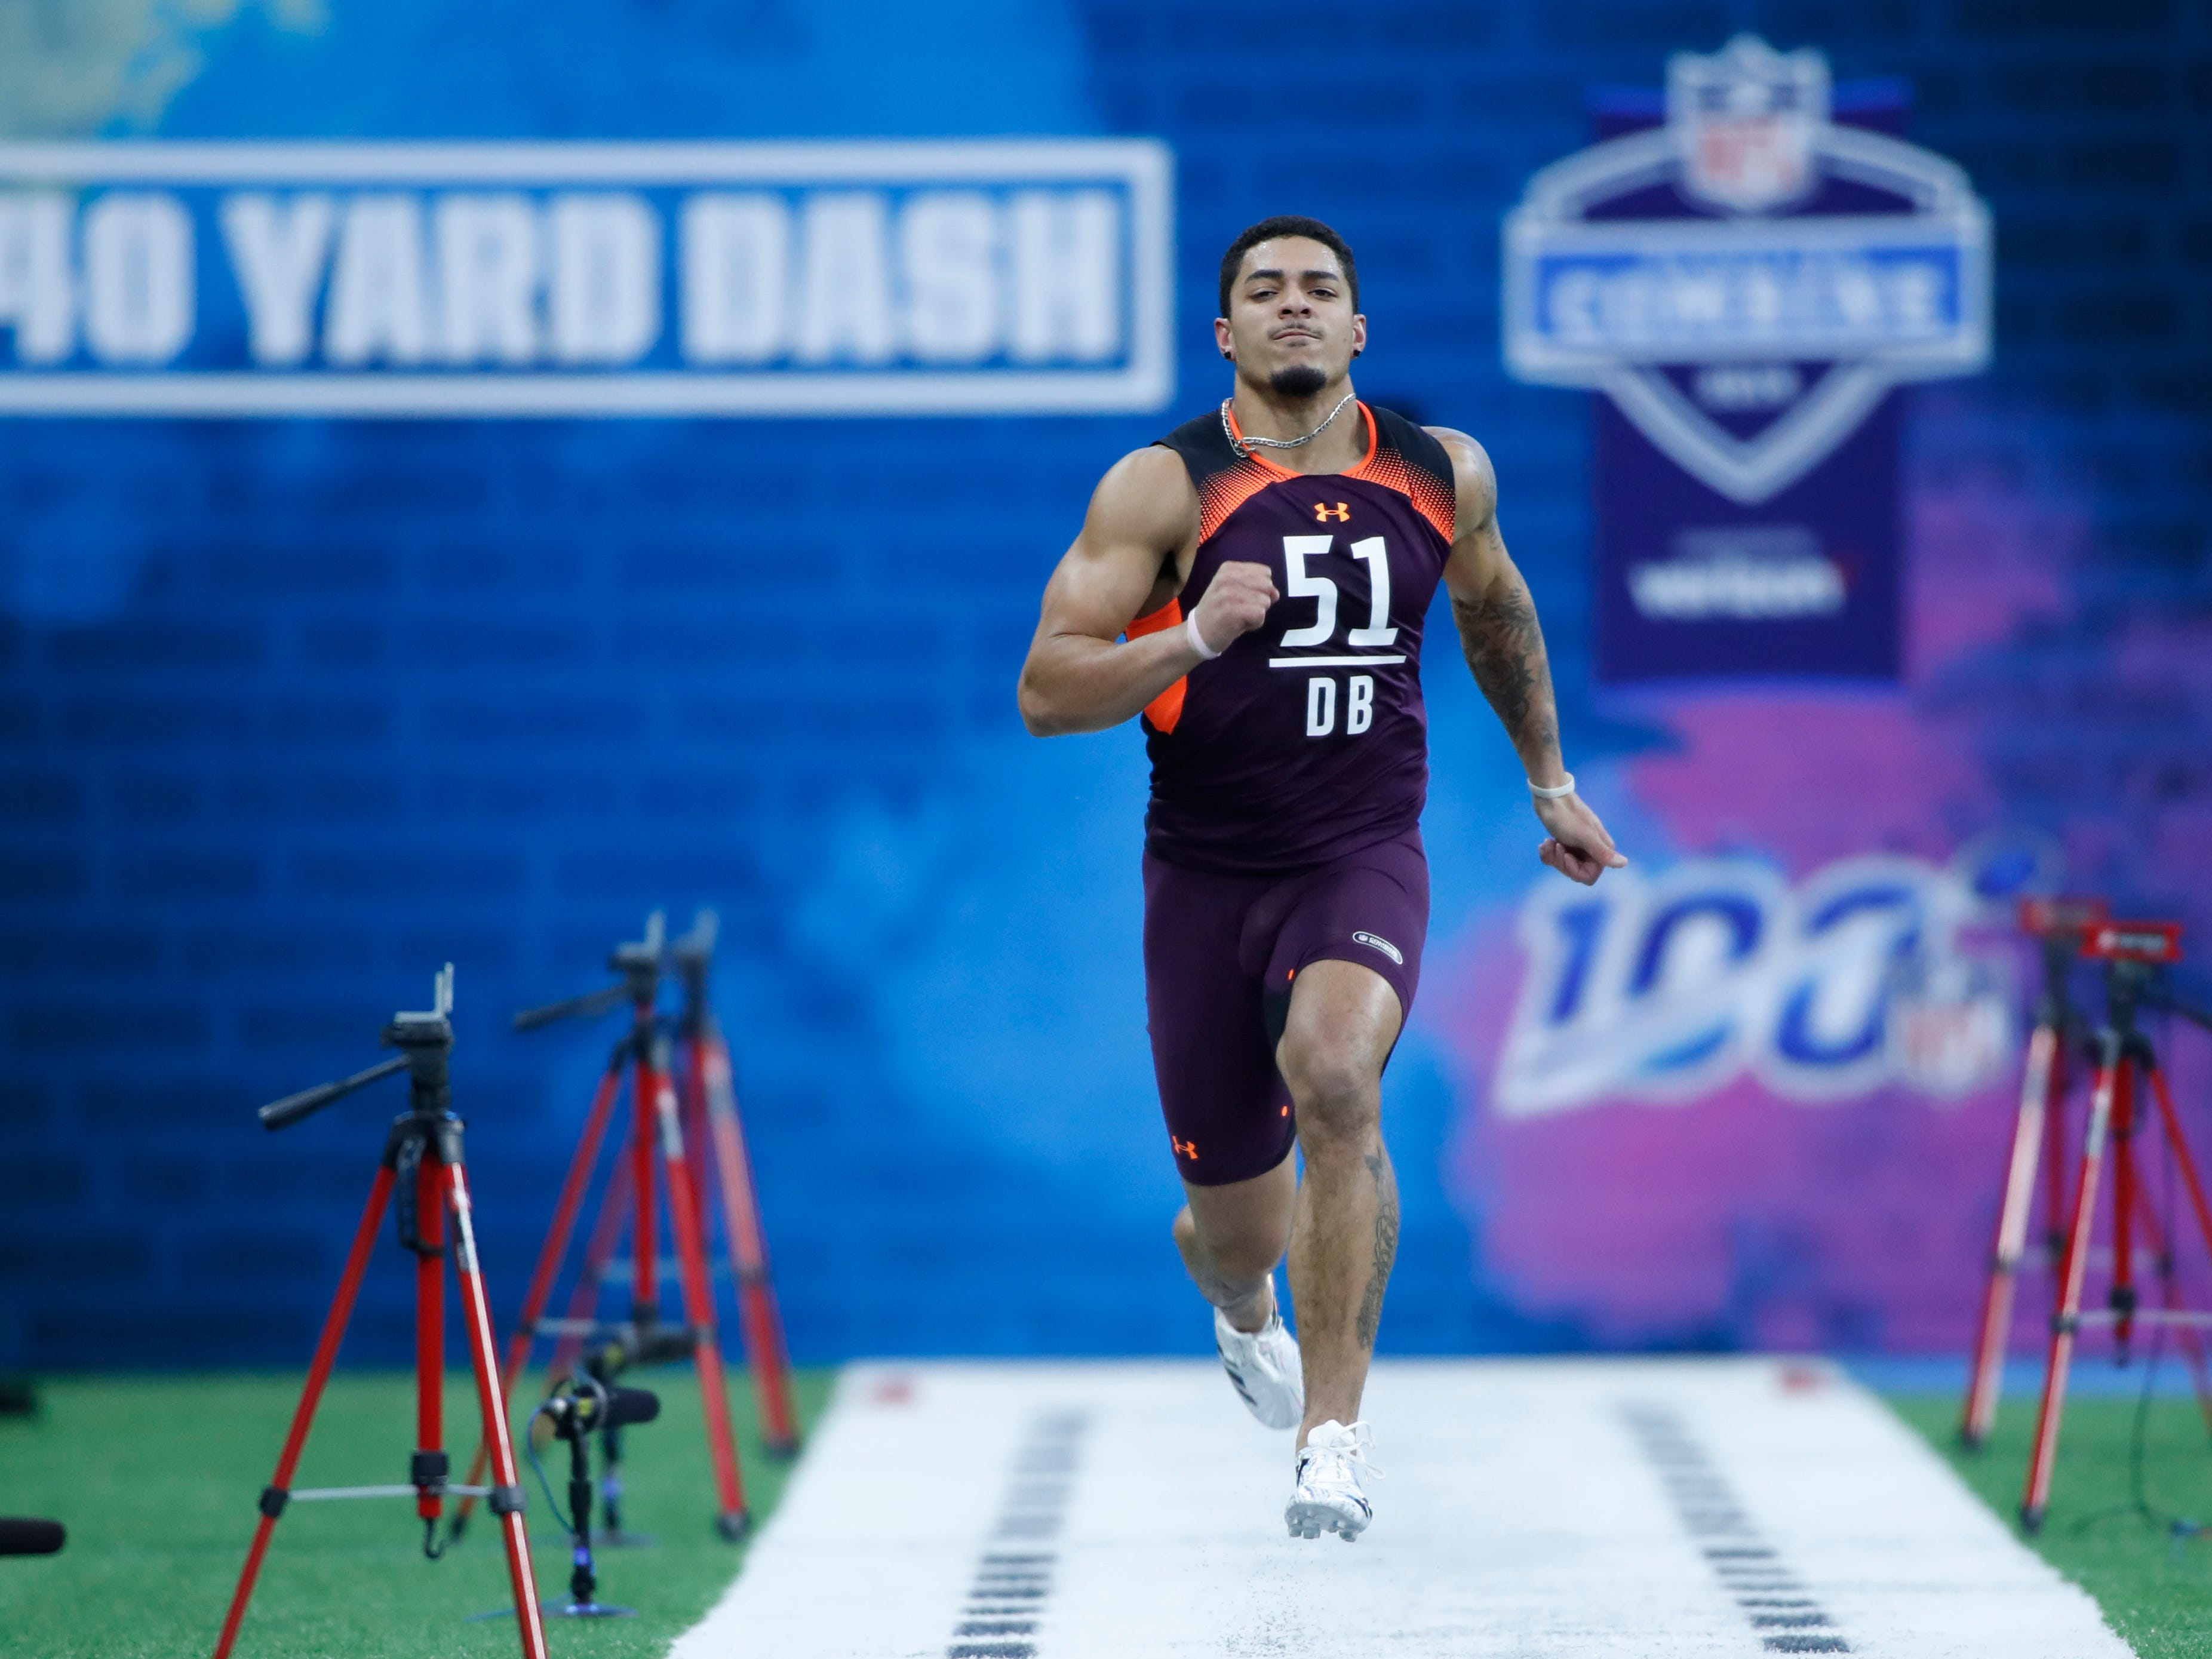 Iowa defensive back Amani Hooker runs the 40 yard dash during the 2019 NFL Combine at Lucas Oil Stadium.